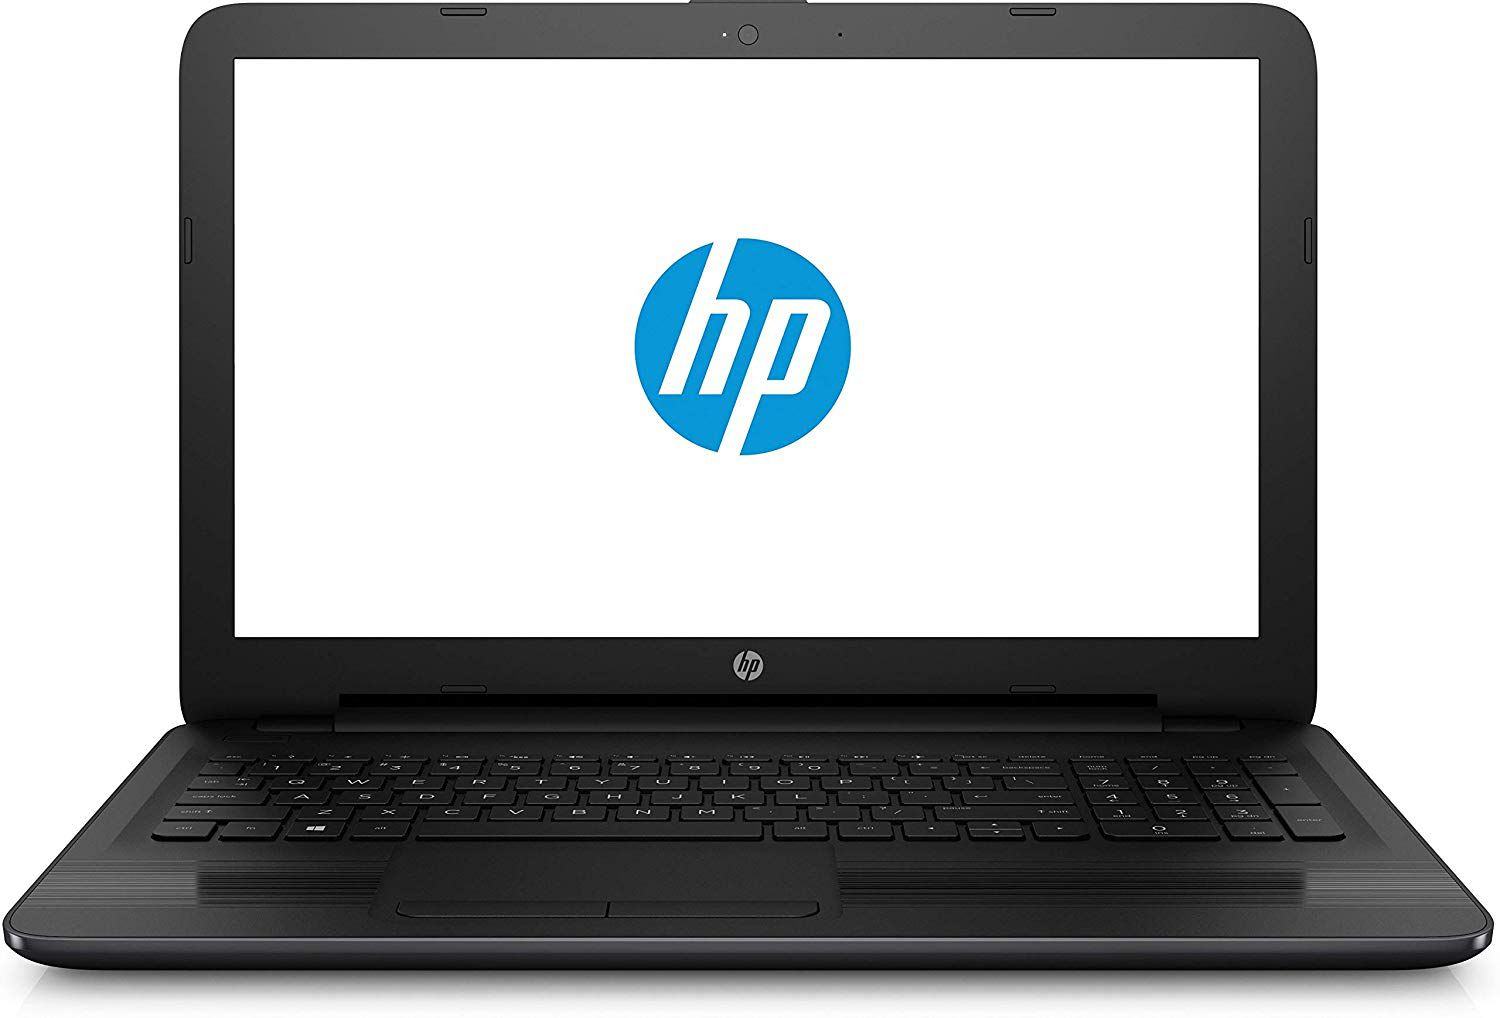 Notebook HP 250 G2 I3 2.4ghz 4GB 500GB tela 15.6    - PAGDEPOIS